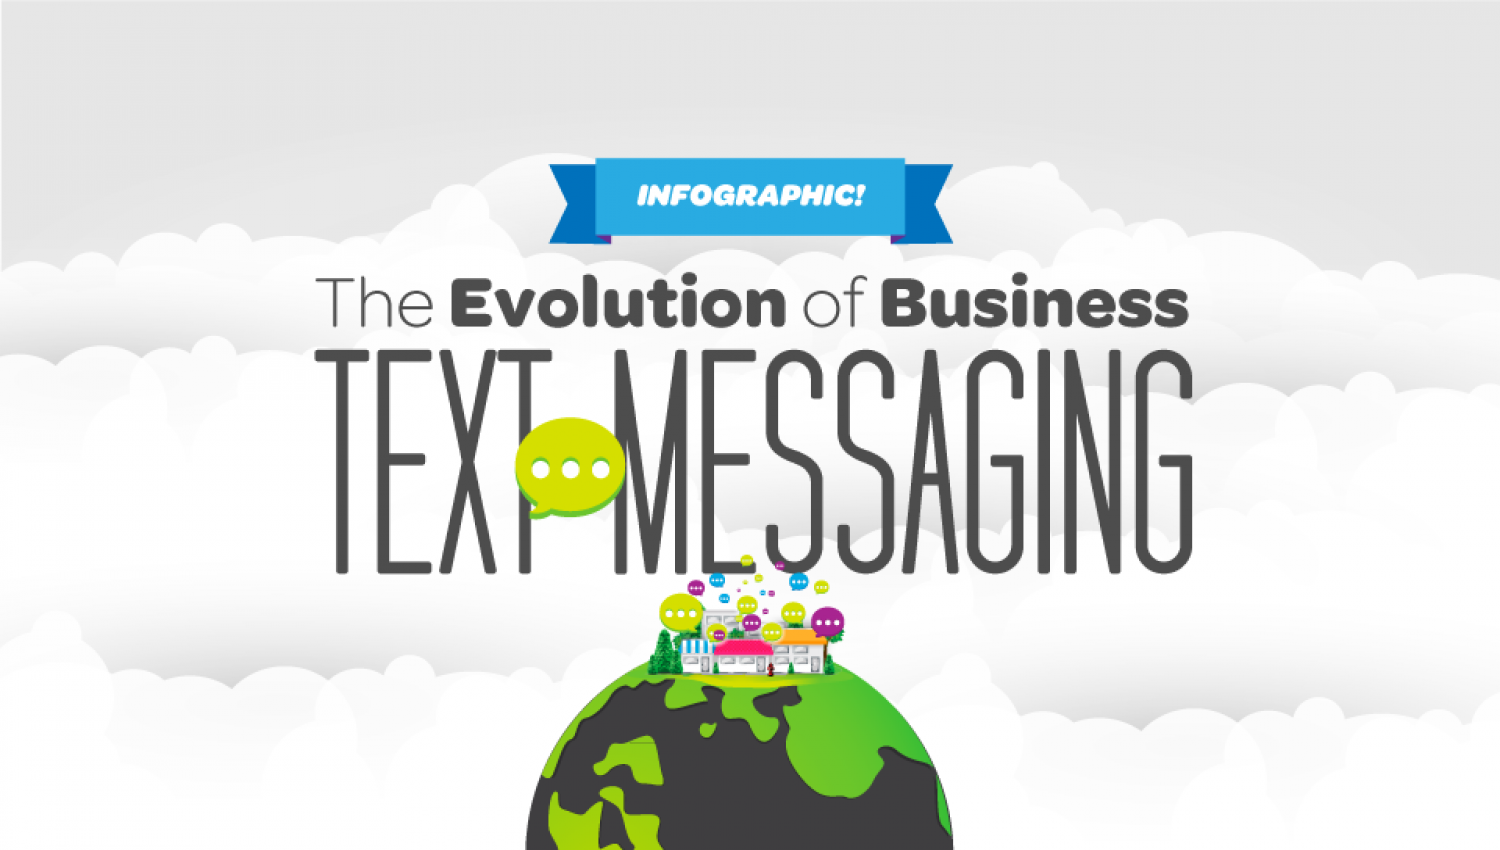 The Evolution of Business Text Messaging Infographic